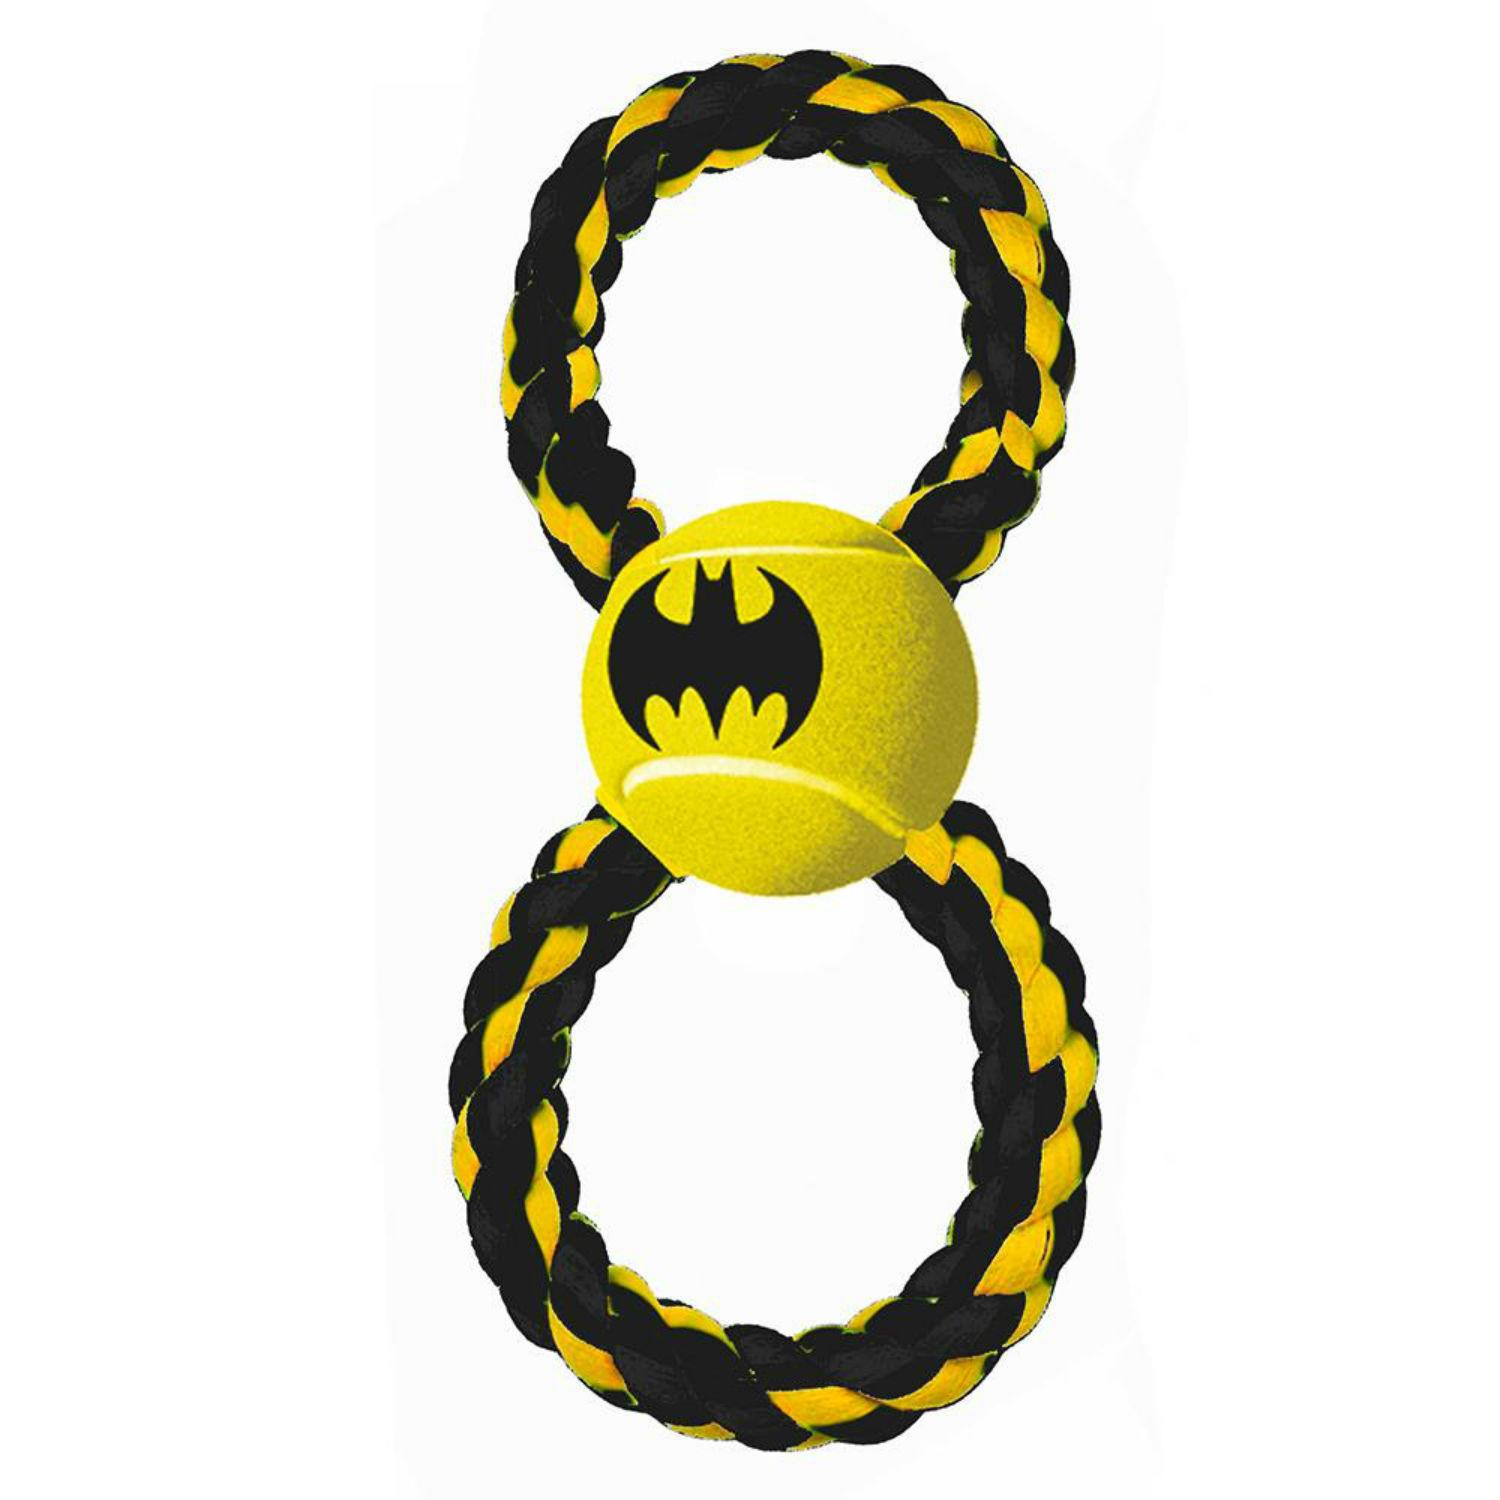 Batman Rope Tennis Ball Dog Toy by Buckle-Down - Black/Yellow